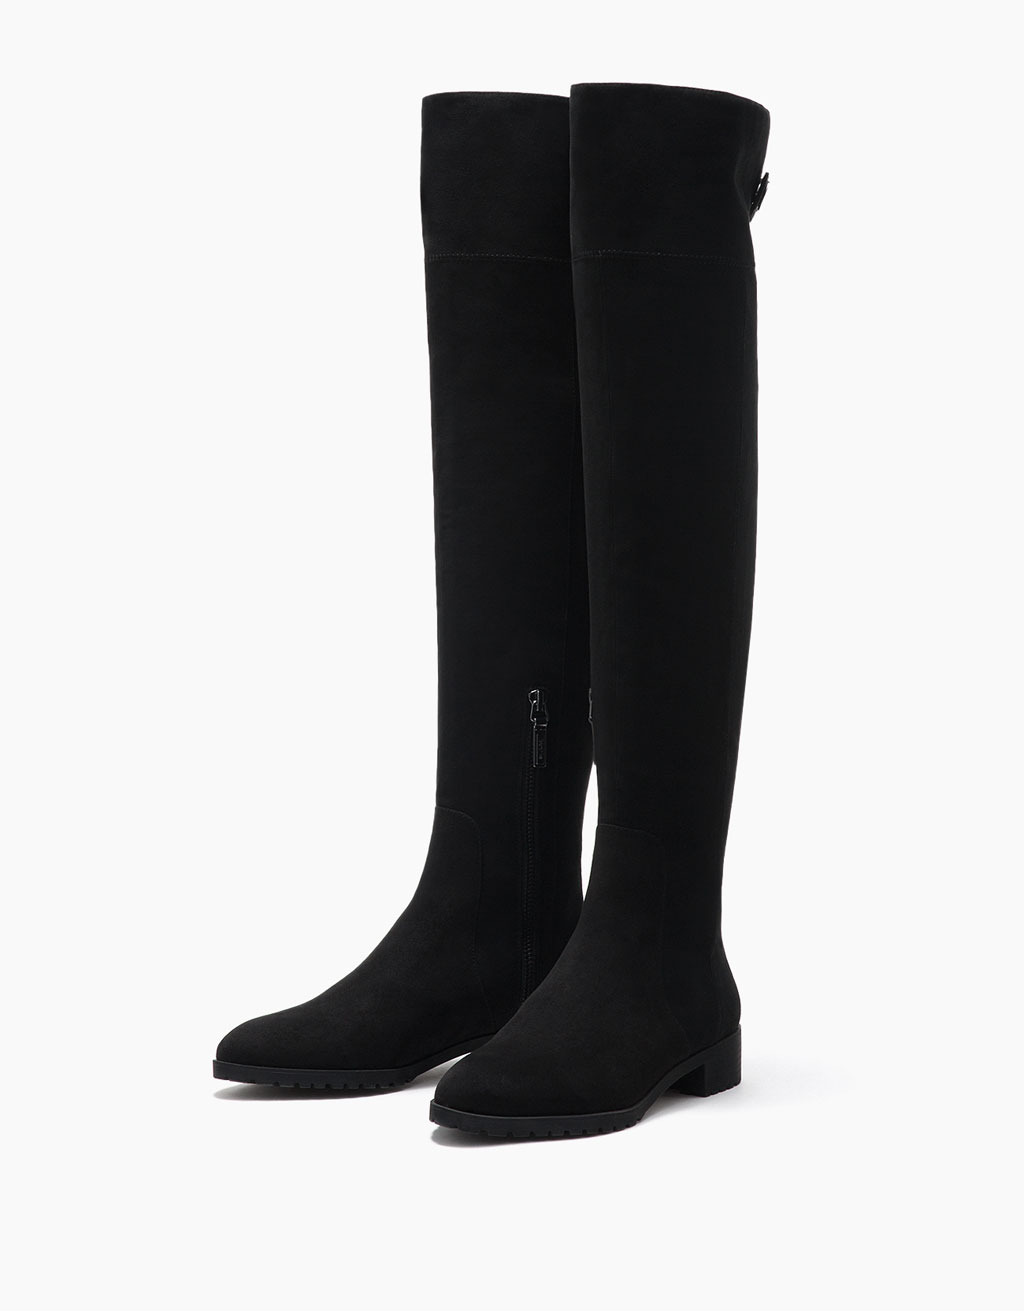 Tight-fitting flat, tall boots